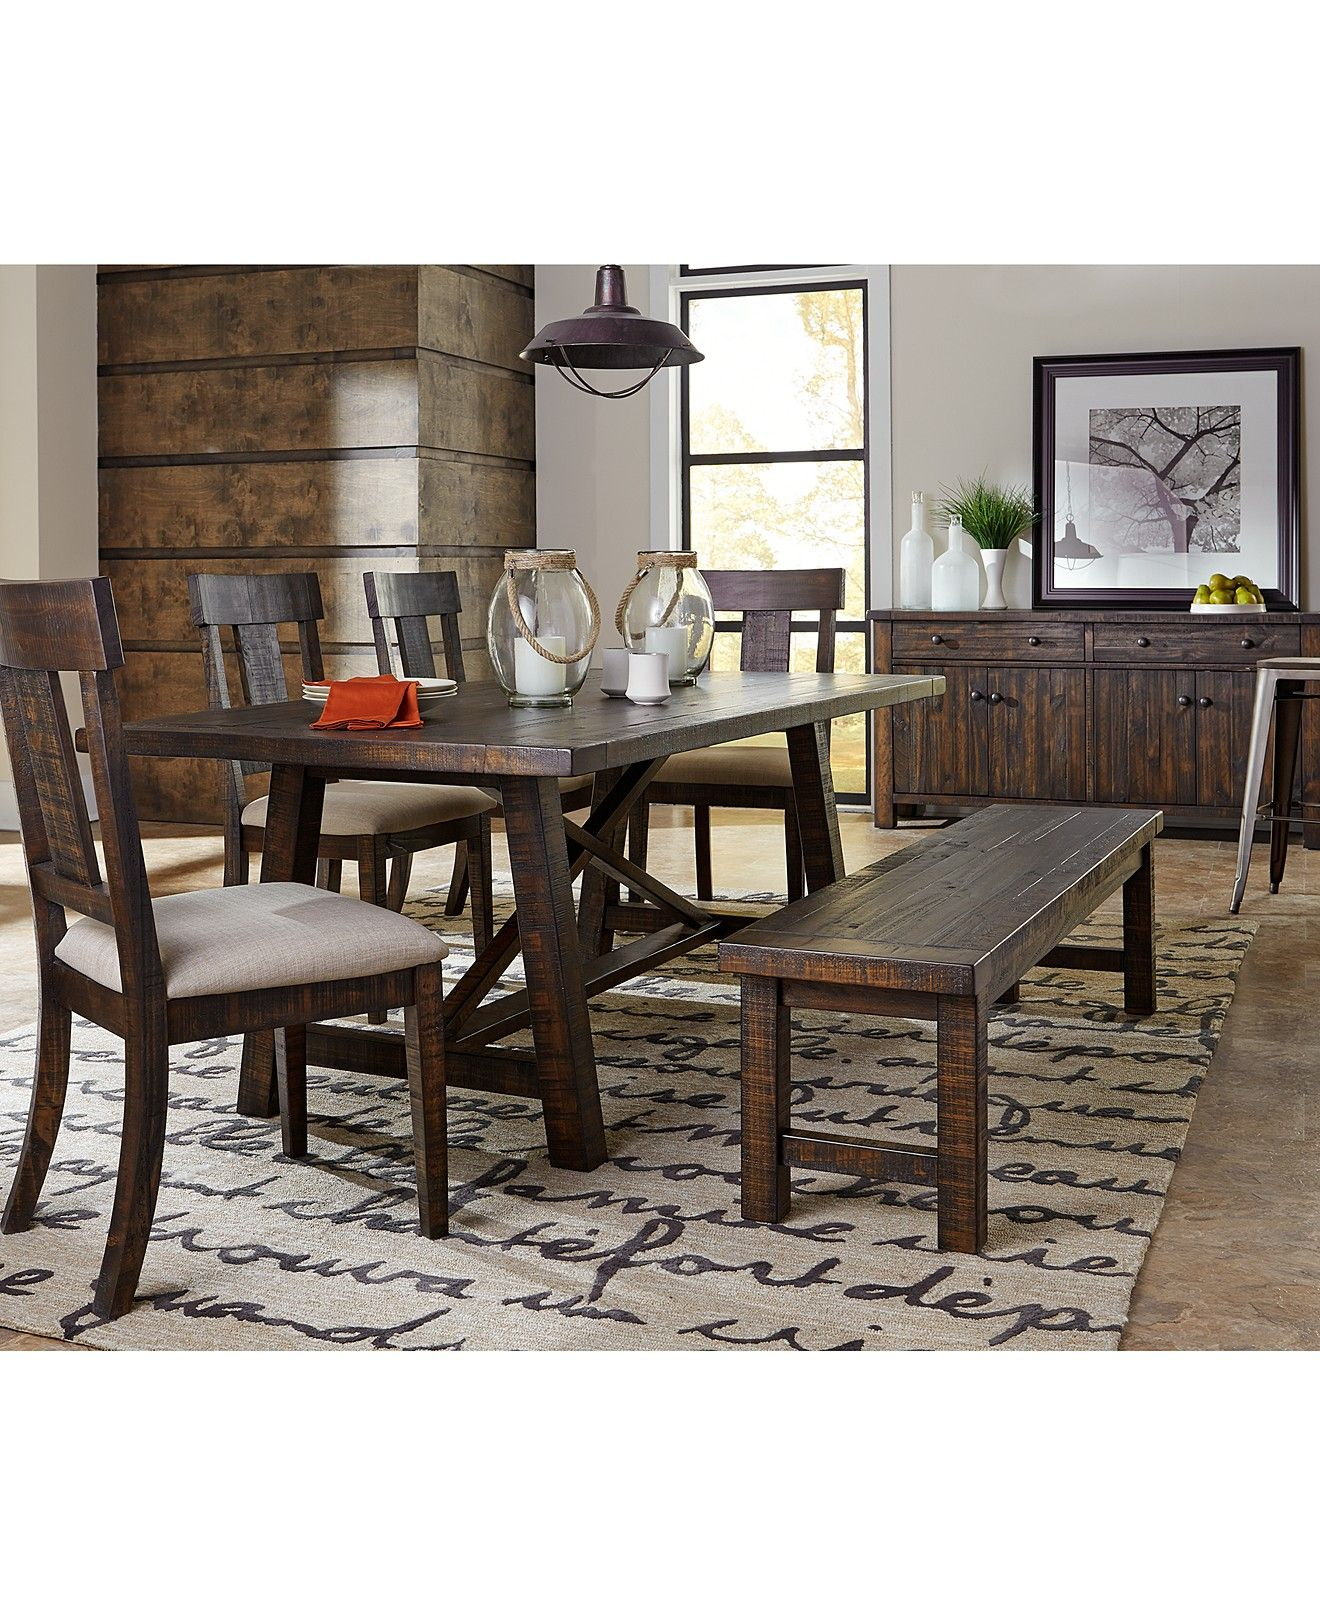 ember 6-piece dining room furniture set - furniture - macy's